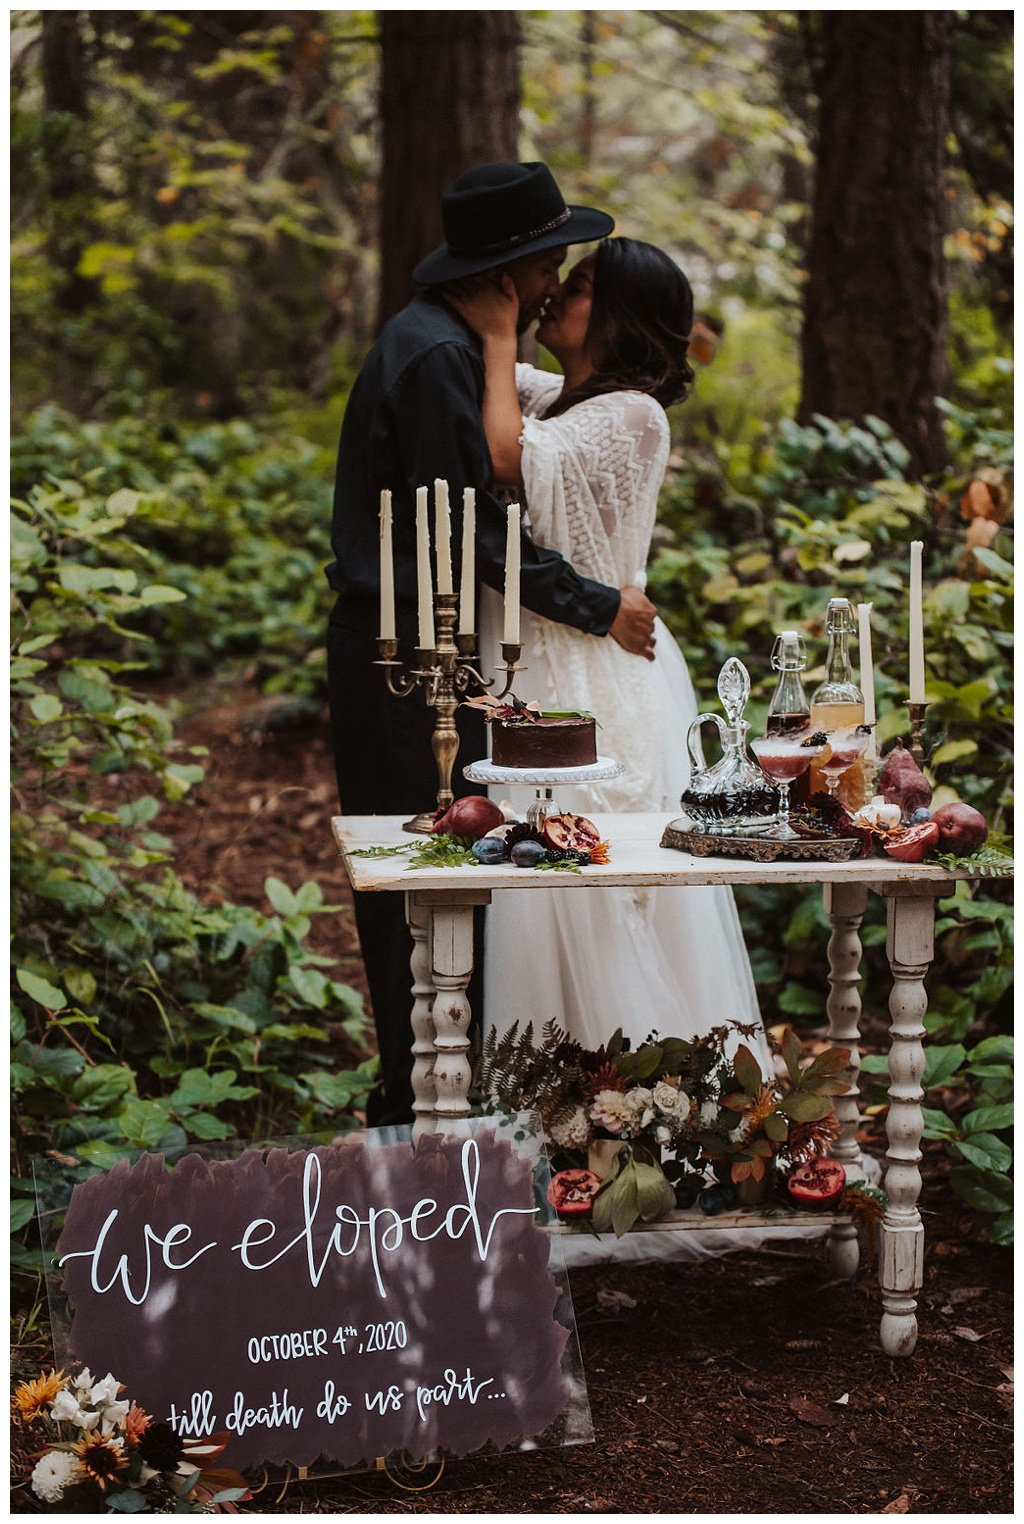 A vintage cocktail table in the woods for an elopement, with a cake, beverages, candles, and florals.